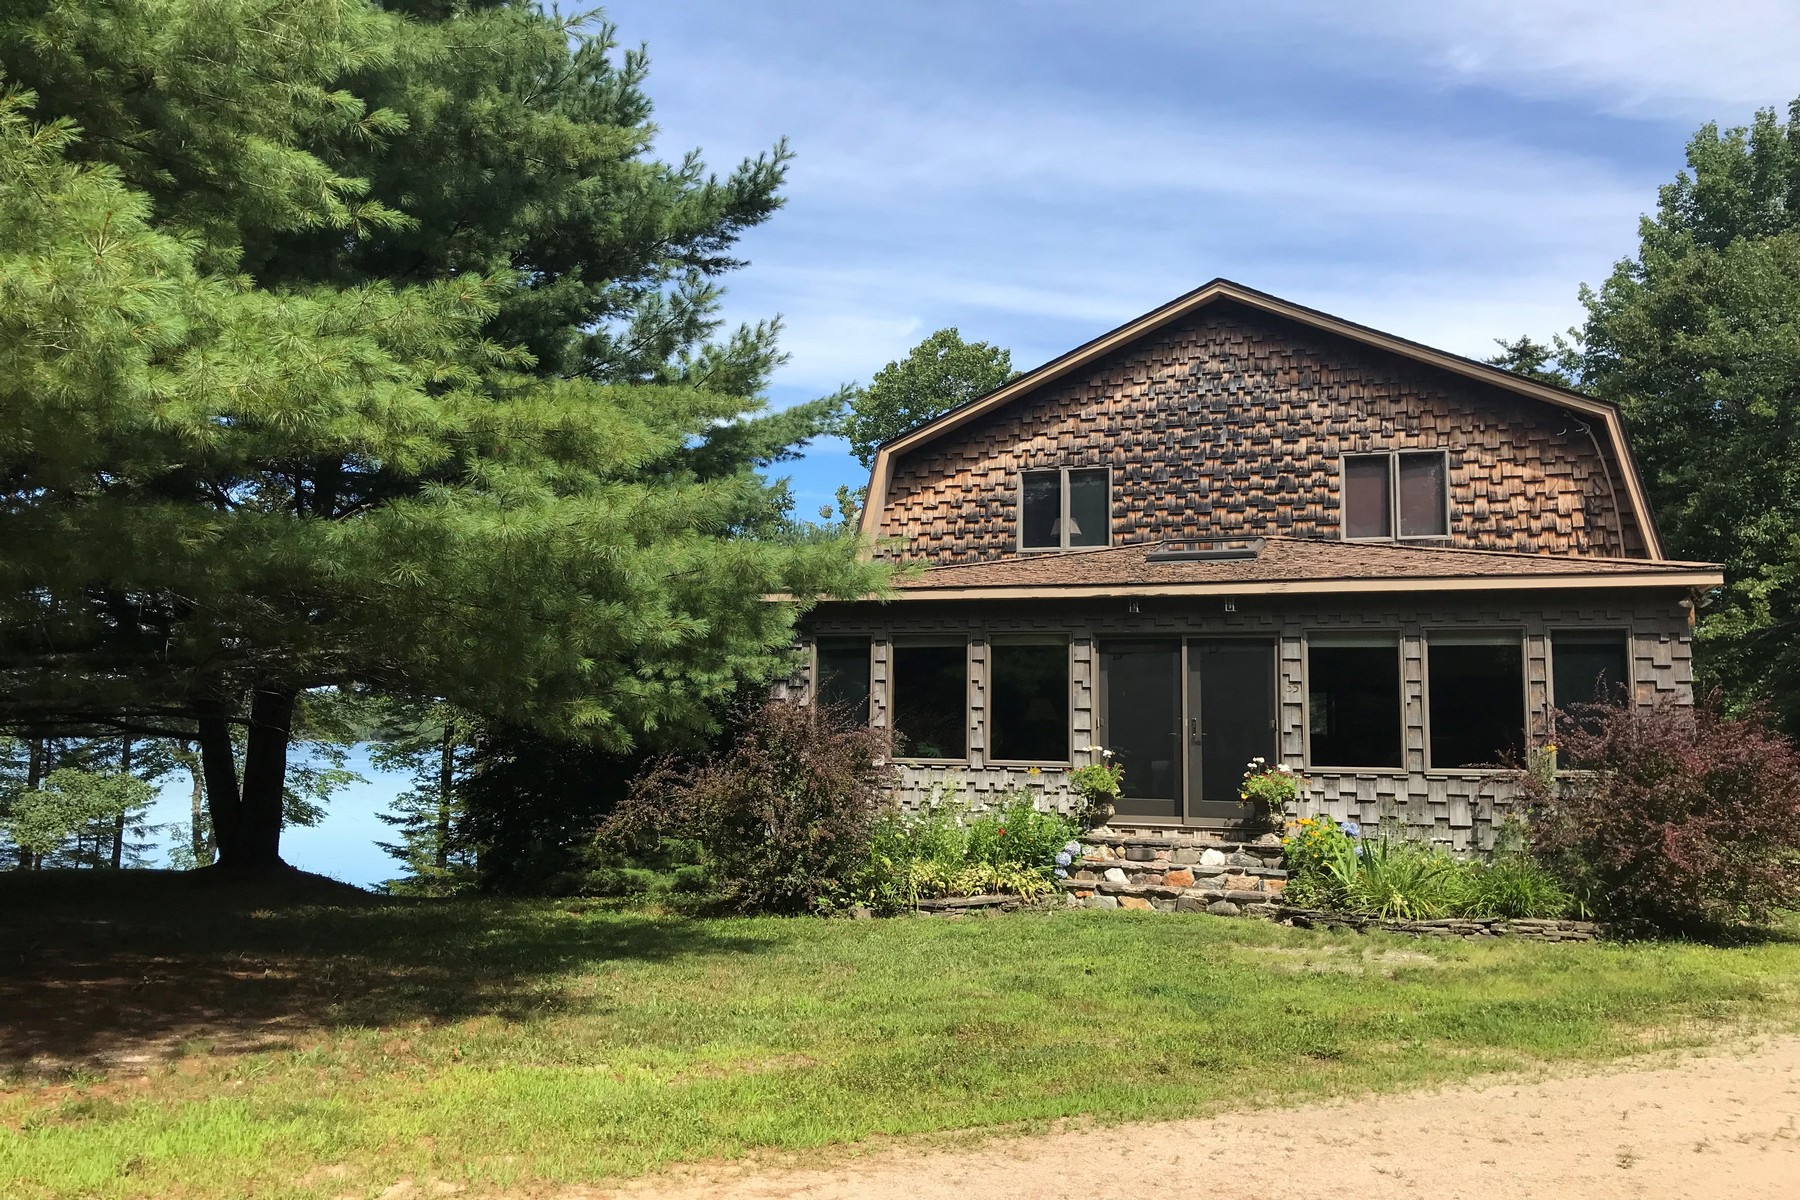 Single Family Homes for Active at Carrying Plane 55 Carrying Place Lane Surry, Maine 04684 United States